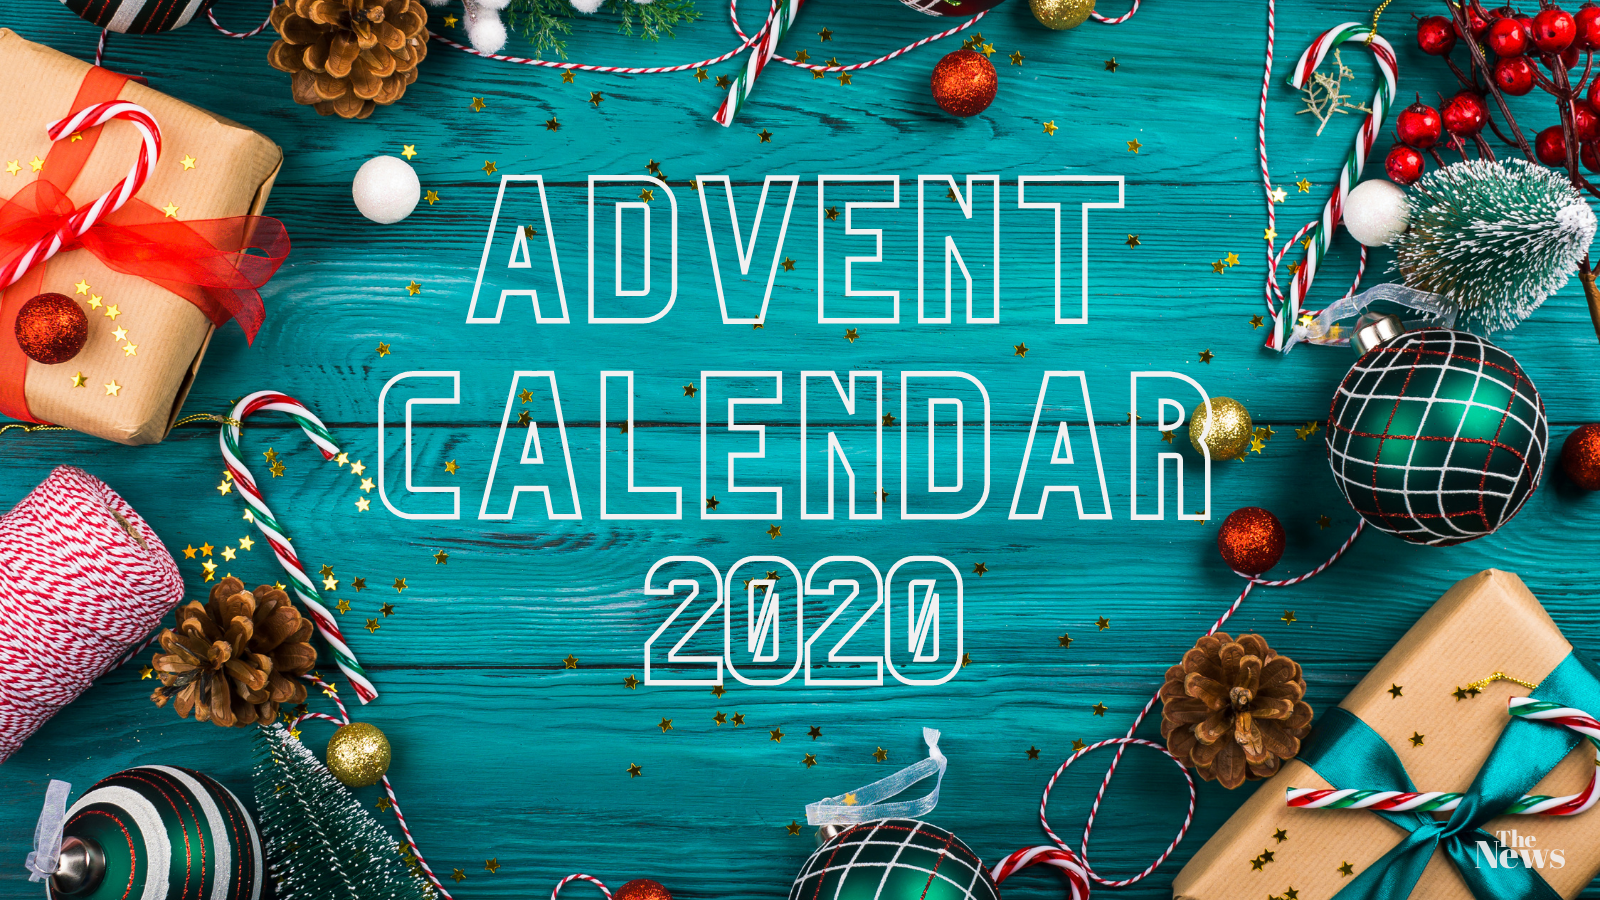 Mercari Advent Calendar 2020 is coming up!